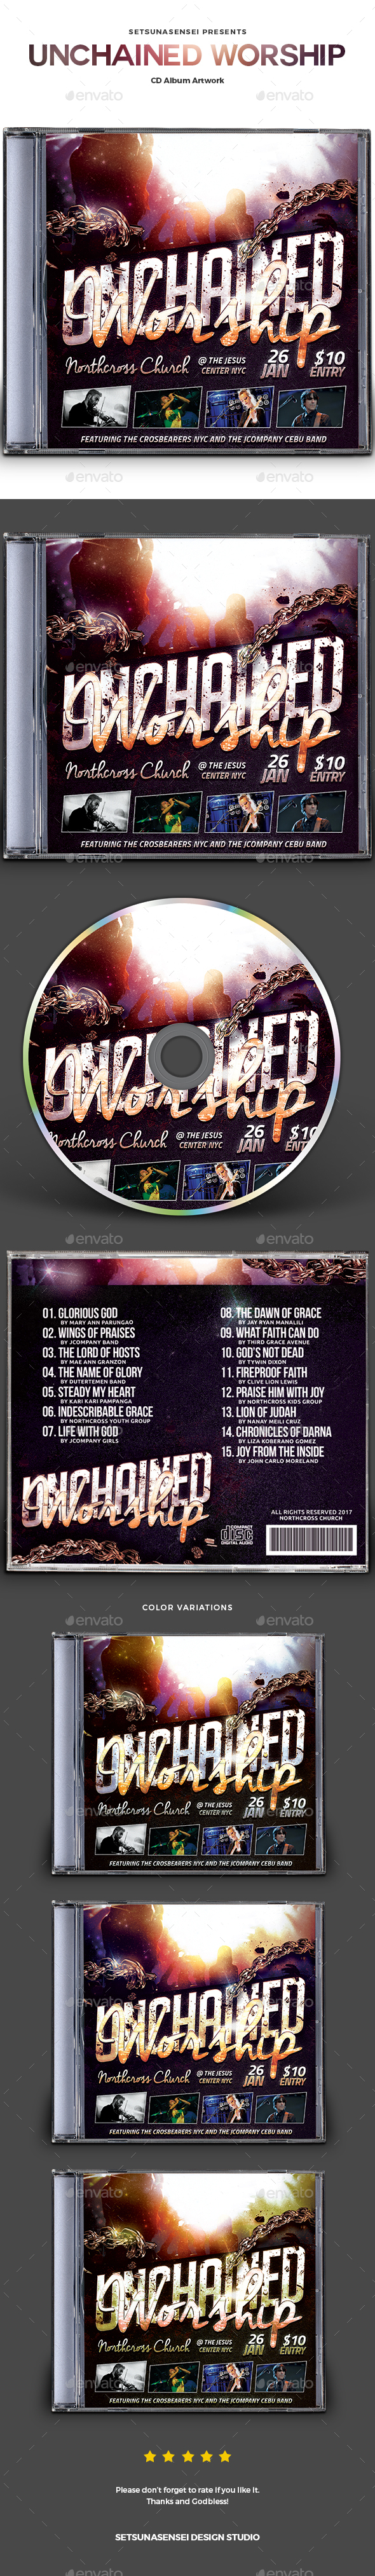 GraphicRiver Unchained Worship CD Album Artwork 20782064